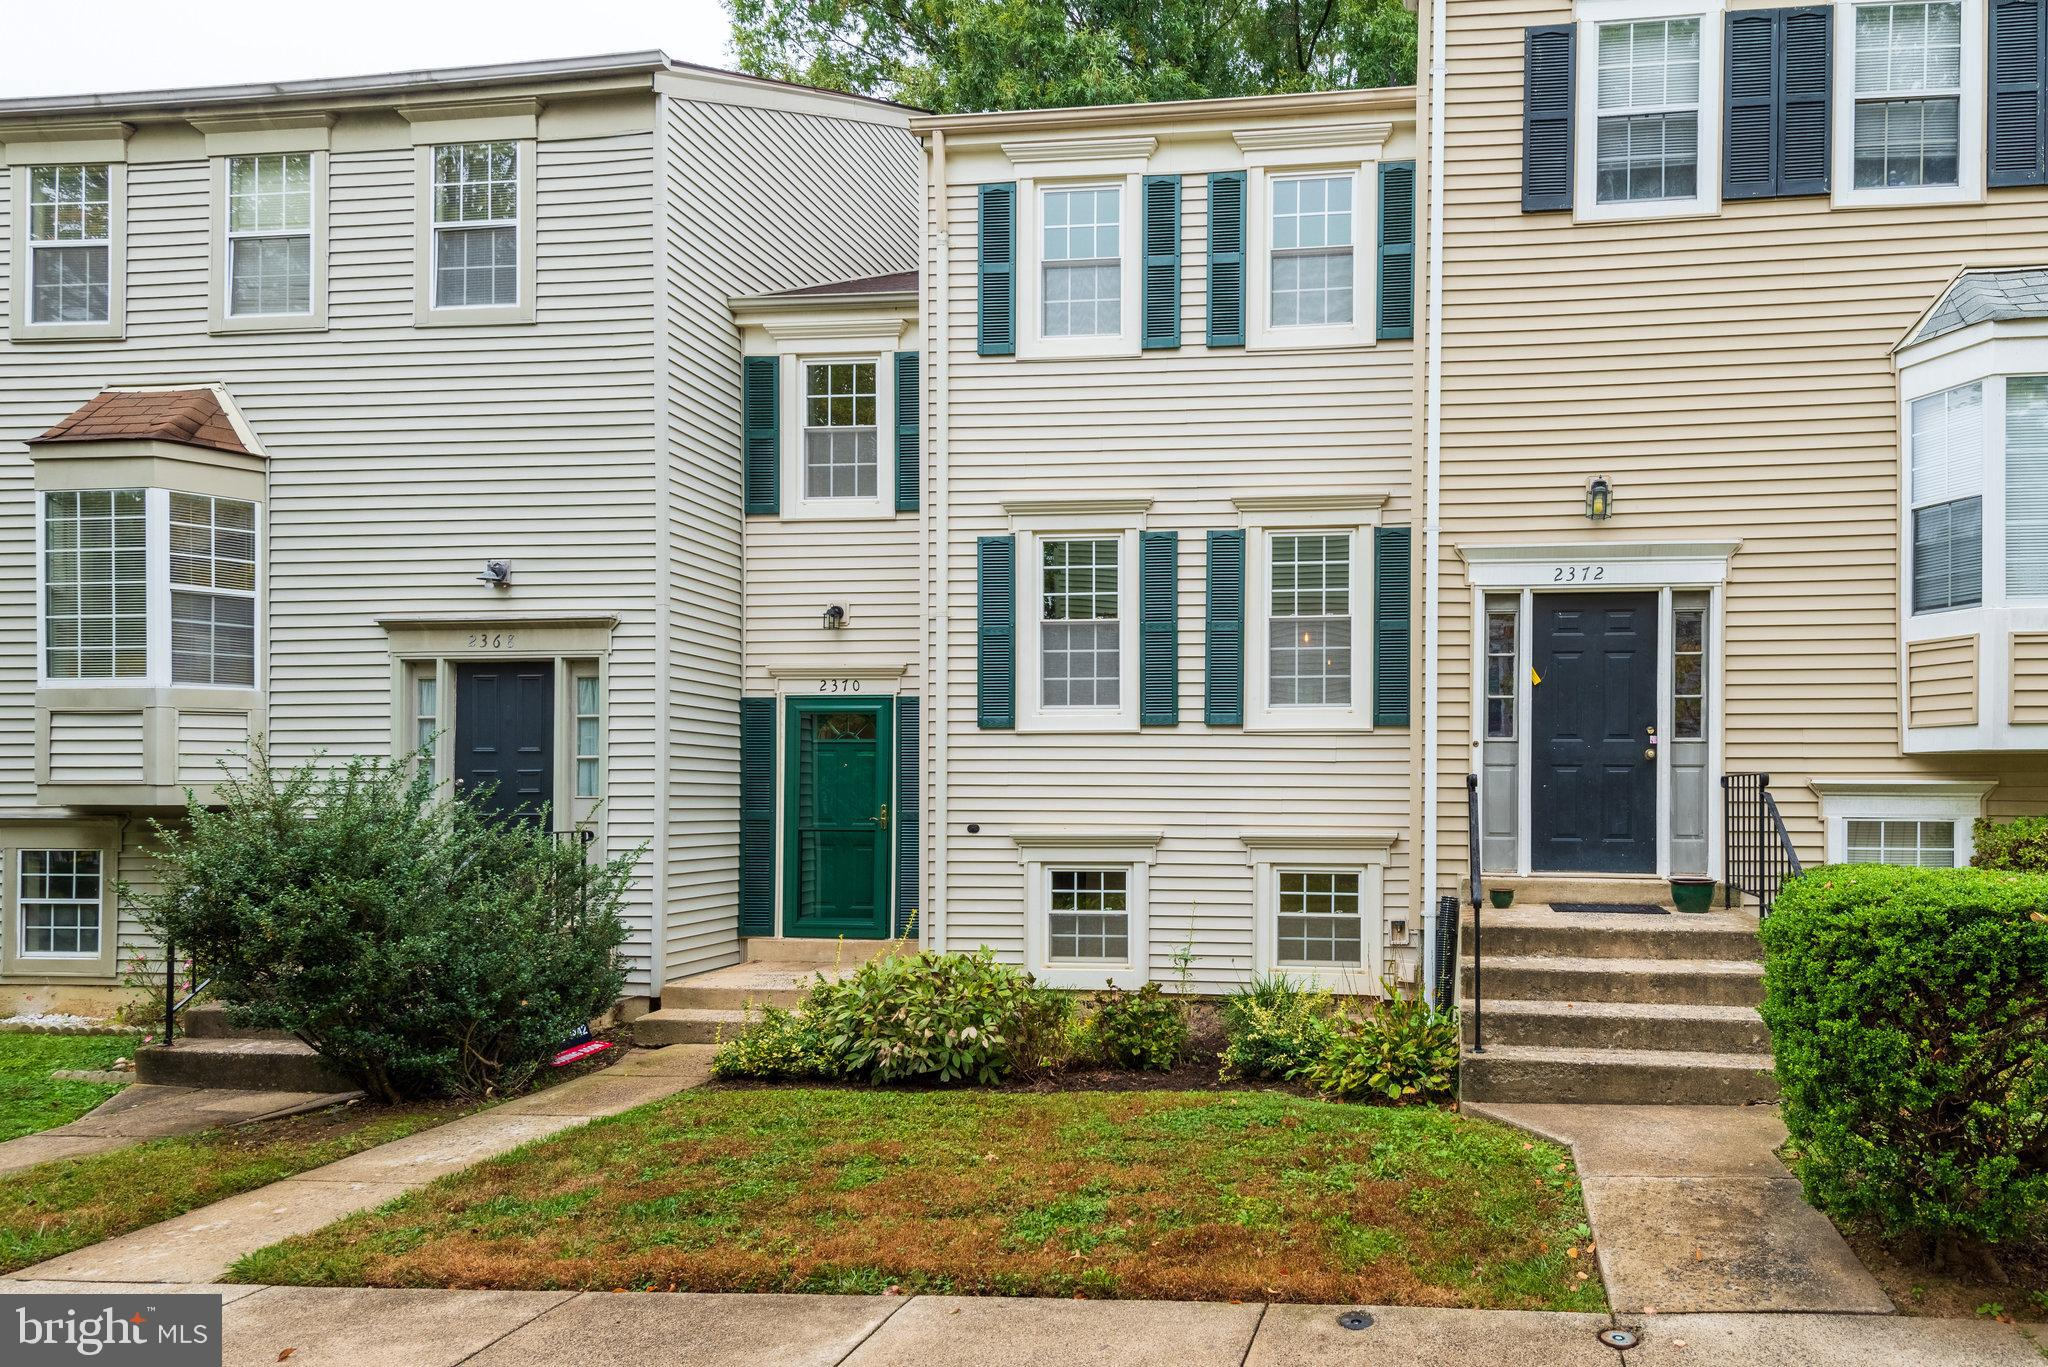 Lovely town home in sought after Reston - lots of upgrades! This one will make you smile from the moment you enter.  You will love the updated interior, as well  as the quiet community courtyard right out your front door! Completely remodeled kitchen (2021) featuring white cabinets, granite, and all new stainless appliances; Fully remodeled bath highlighted by white vanity with carrara marble top(2021) and tile flooring, brand new luxury vinyl flooring on the main level, brand new carpet on the upper level, lower level is perfect for entertaining with cozy wood-burning fireplace and half bath. HVAC was replaced in 2017, deck was replaced in 2015.  Parking is assigned + plenty of guest parking spaces. Conveniently located near Reston Parkway, Dulles Toll Rd, and Fairfax County Parkway.  Close to Dulles Airport, and only 6-minute drive to the Silverline Wiehle-Reston Metro Station. Enjoy all of the amenities of Reston Association including swimming pools, tennis courts and miles of walking trails. This neighborhood is a great location for grocery and restaurants at Hunters Woods Shopping Center.  Don't miss this one!